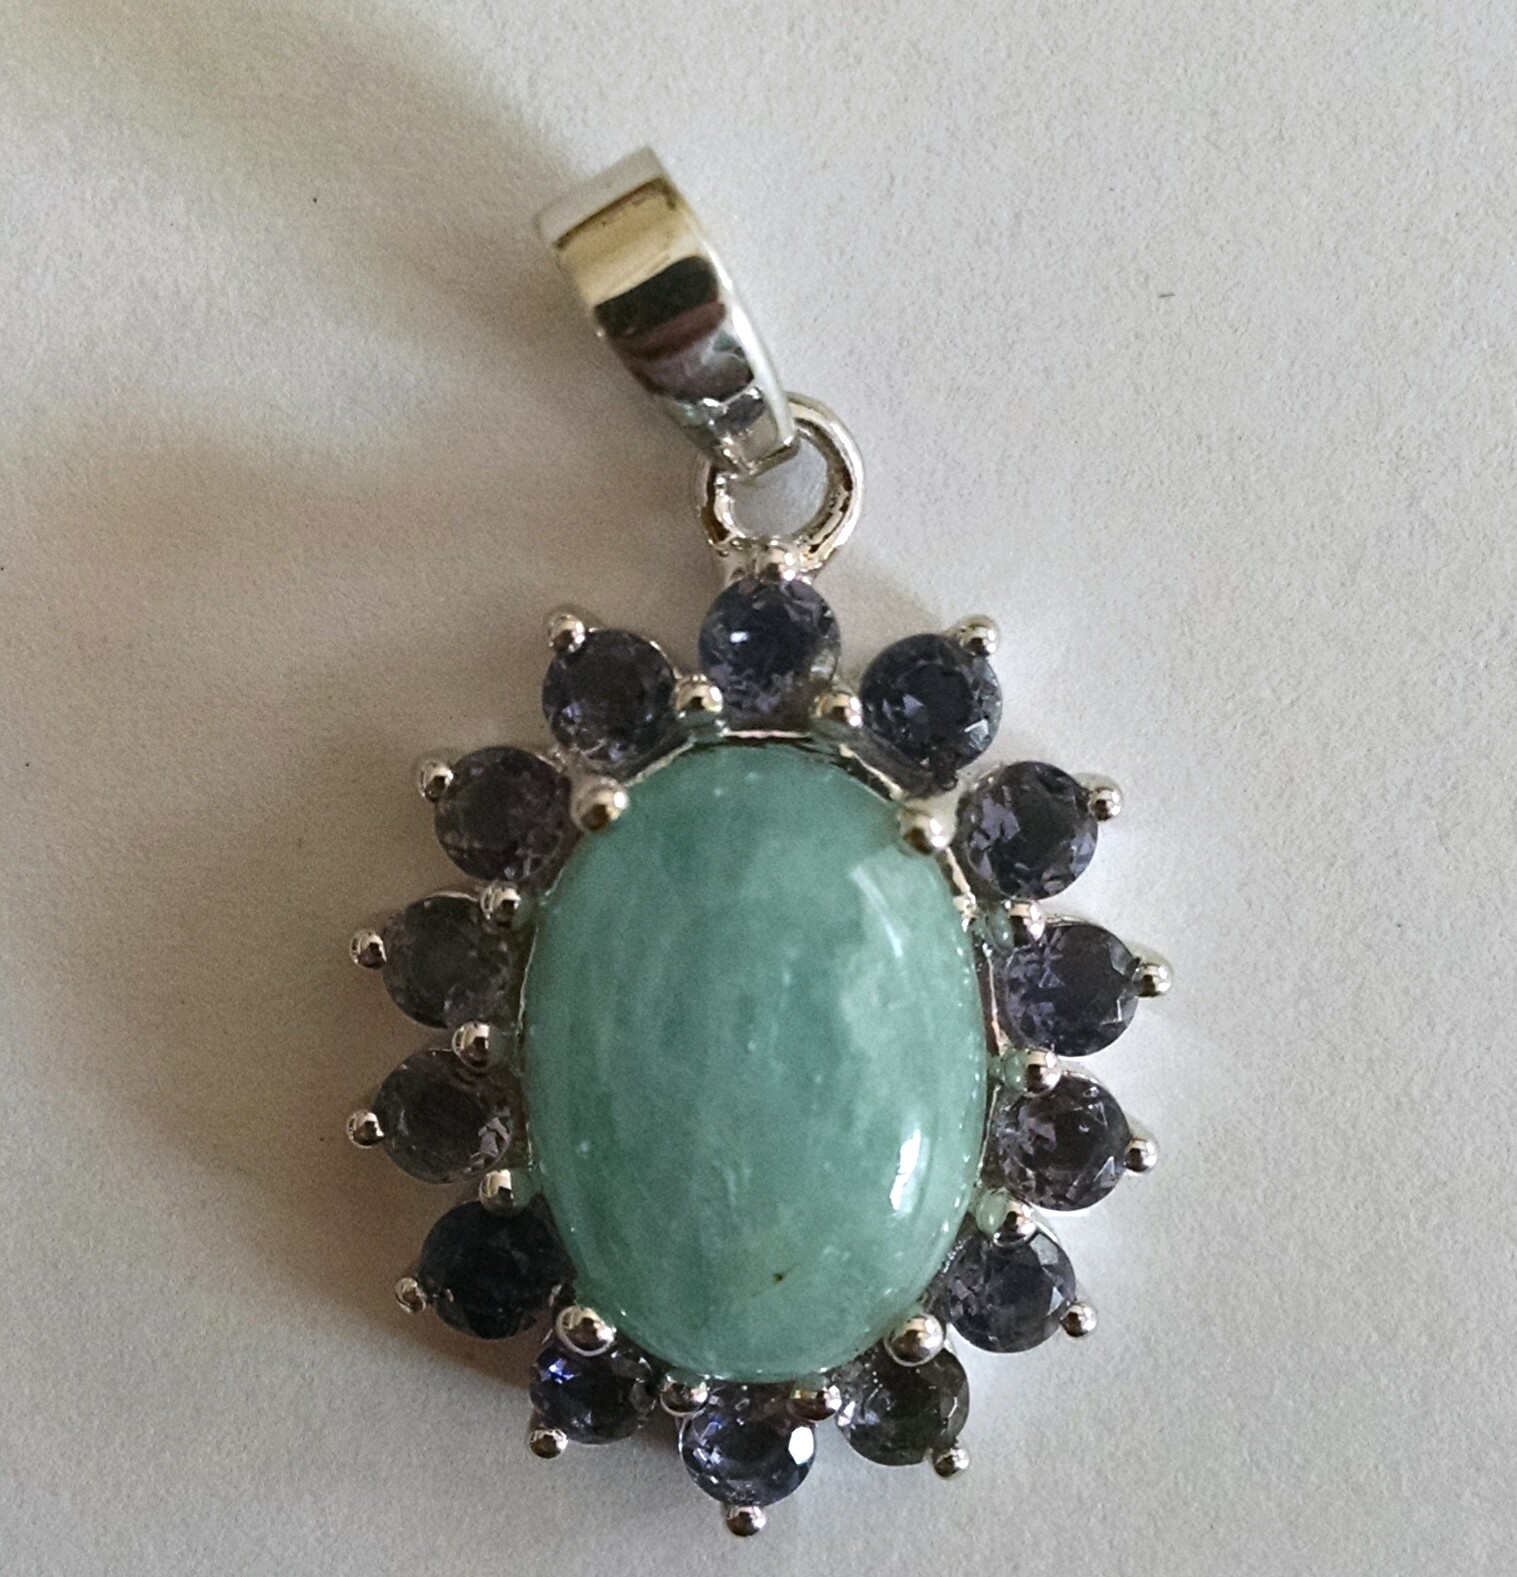 Aquamarine pendant with iolite